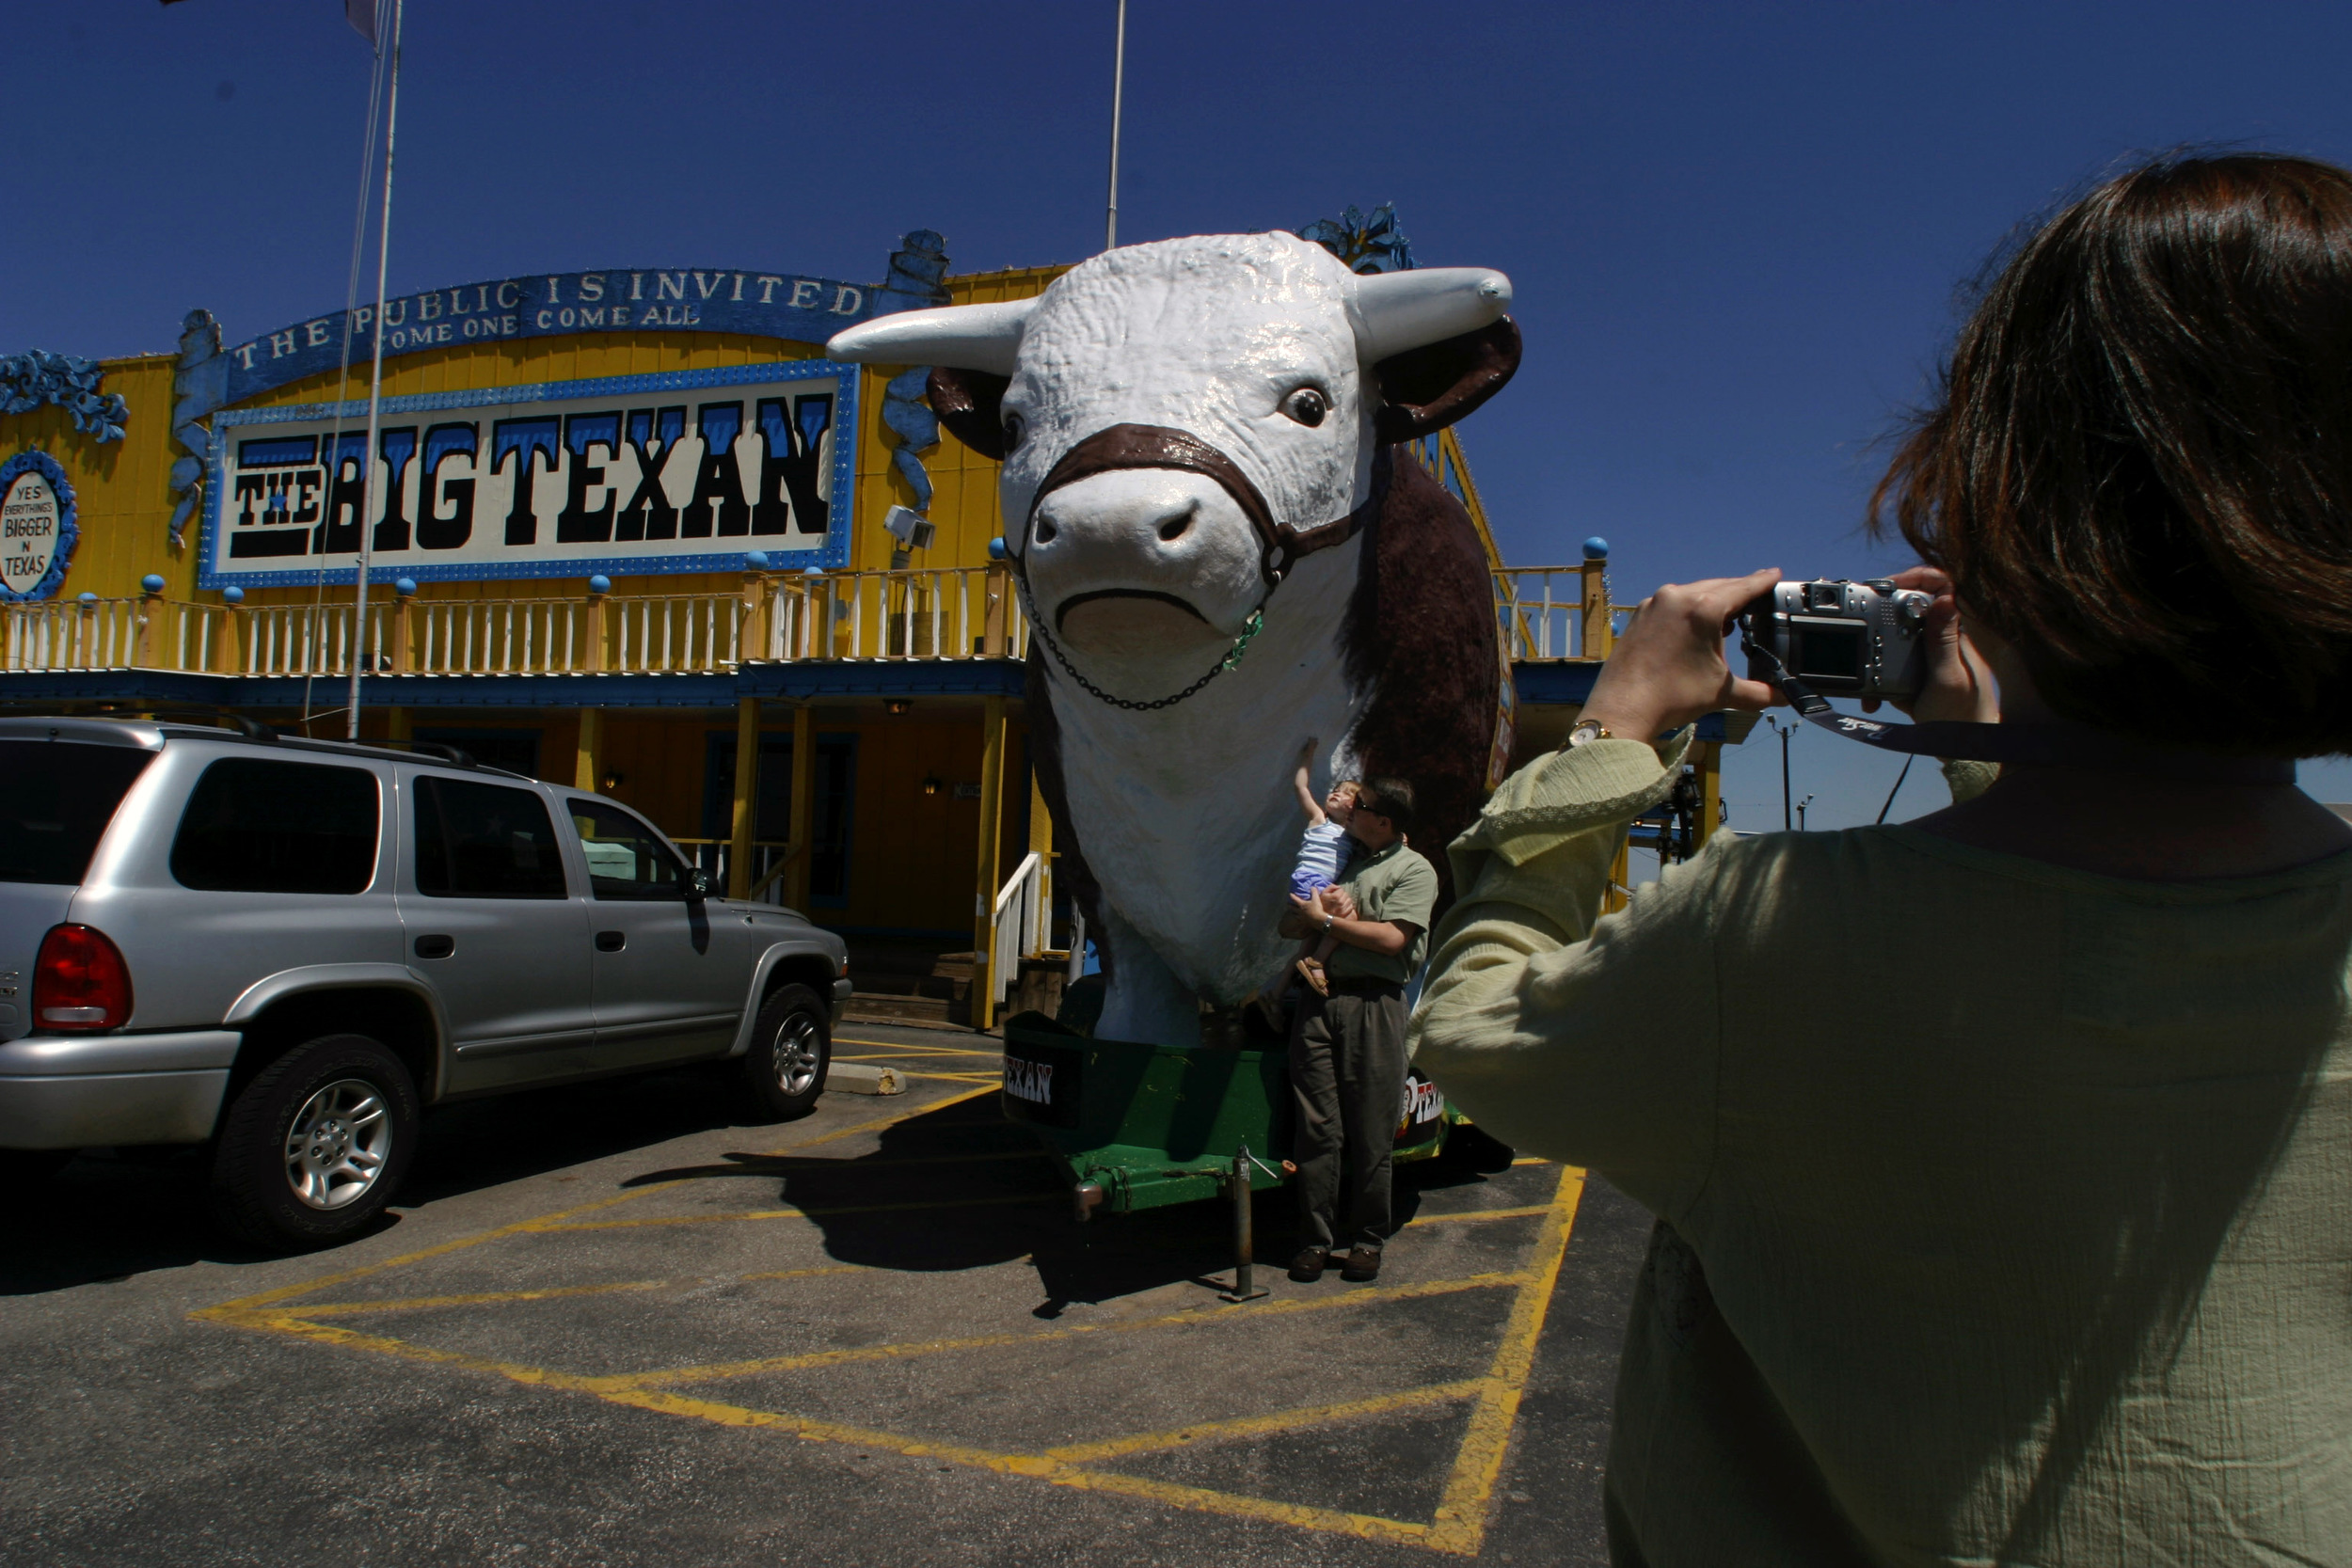 Tourists stop in at the Big Texan steakhouse to snap a photo with the giant cow in Amarillo, Texas.